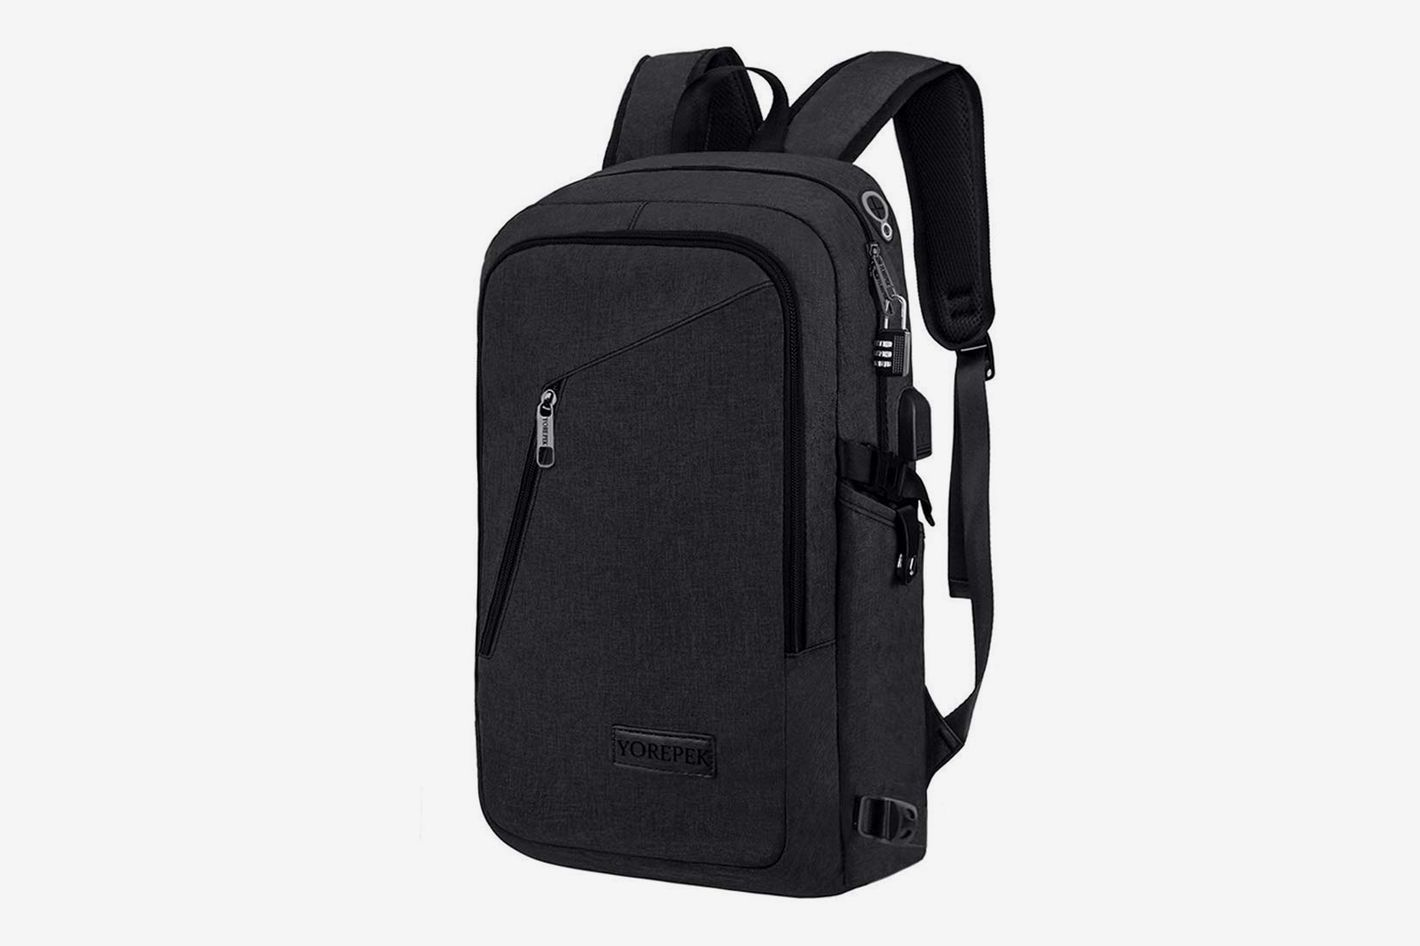 b11138f30 Yorepek Slim Laptop Travel Backpack